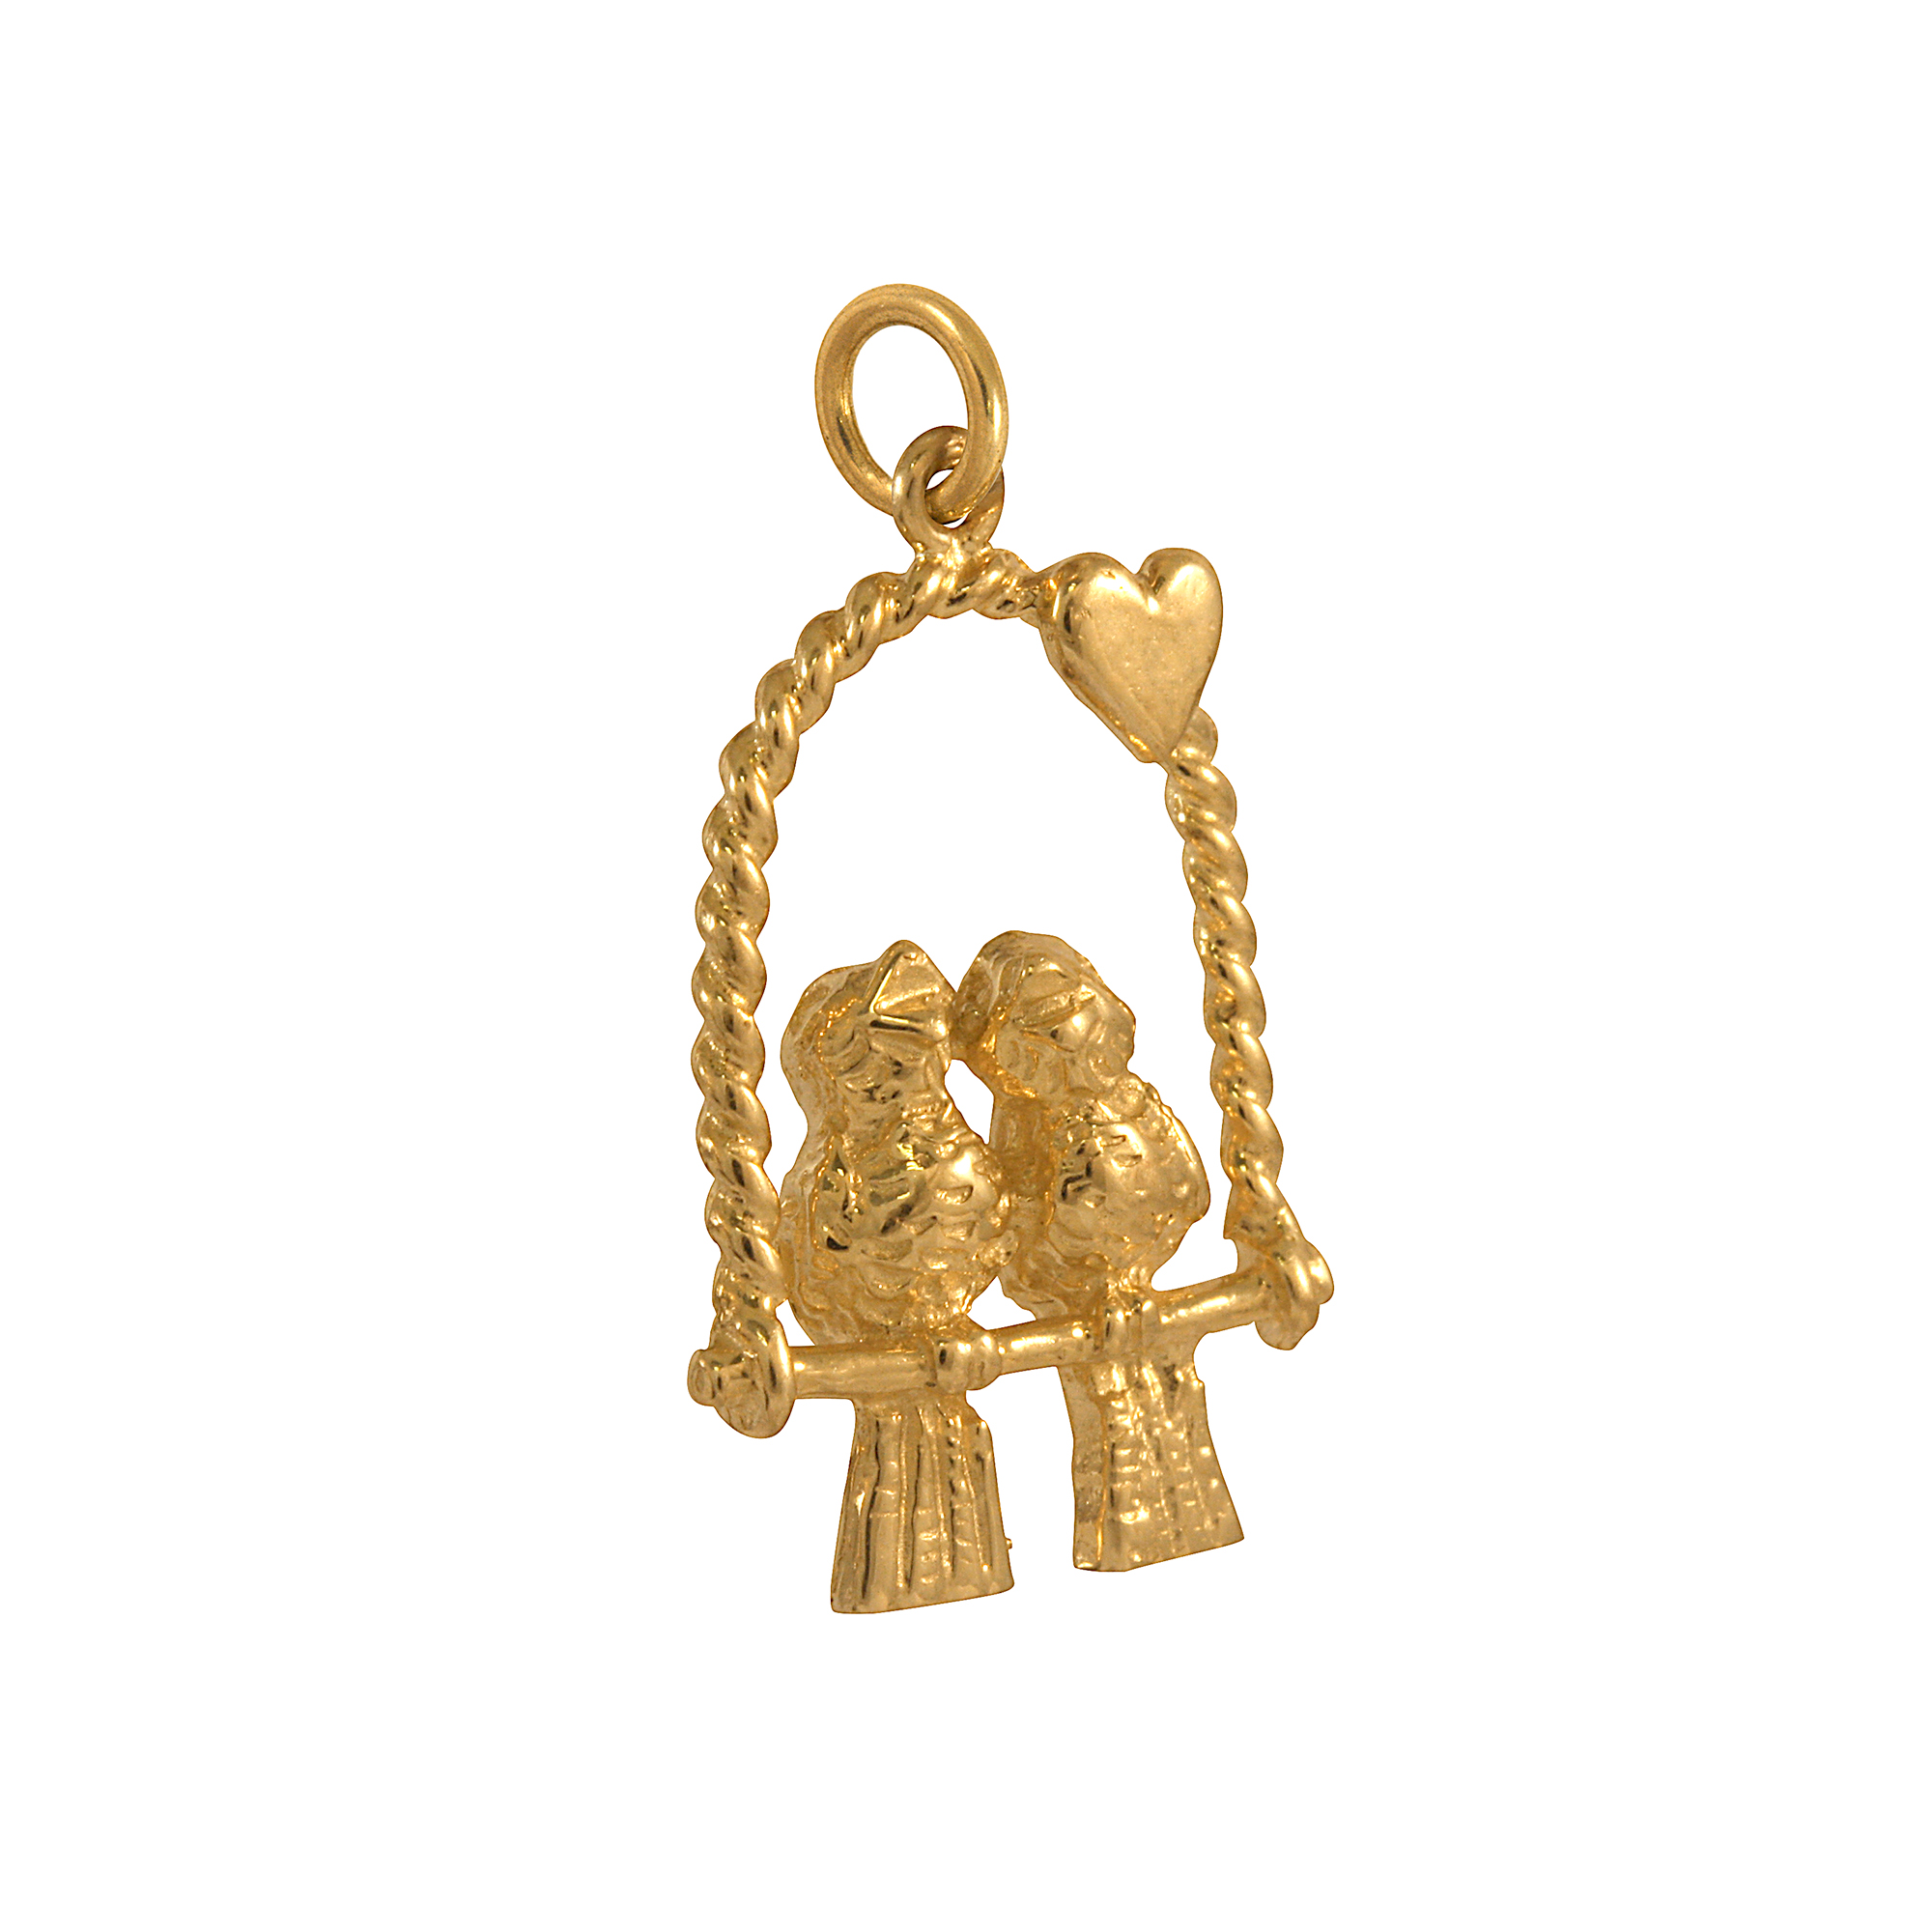 An image of 9ct Gold Love Birds Charms